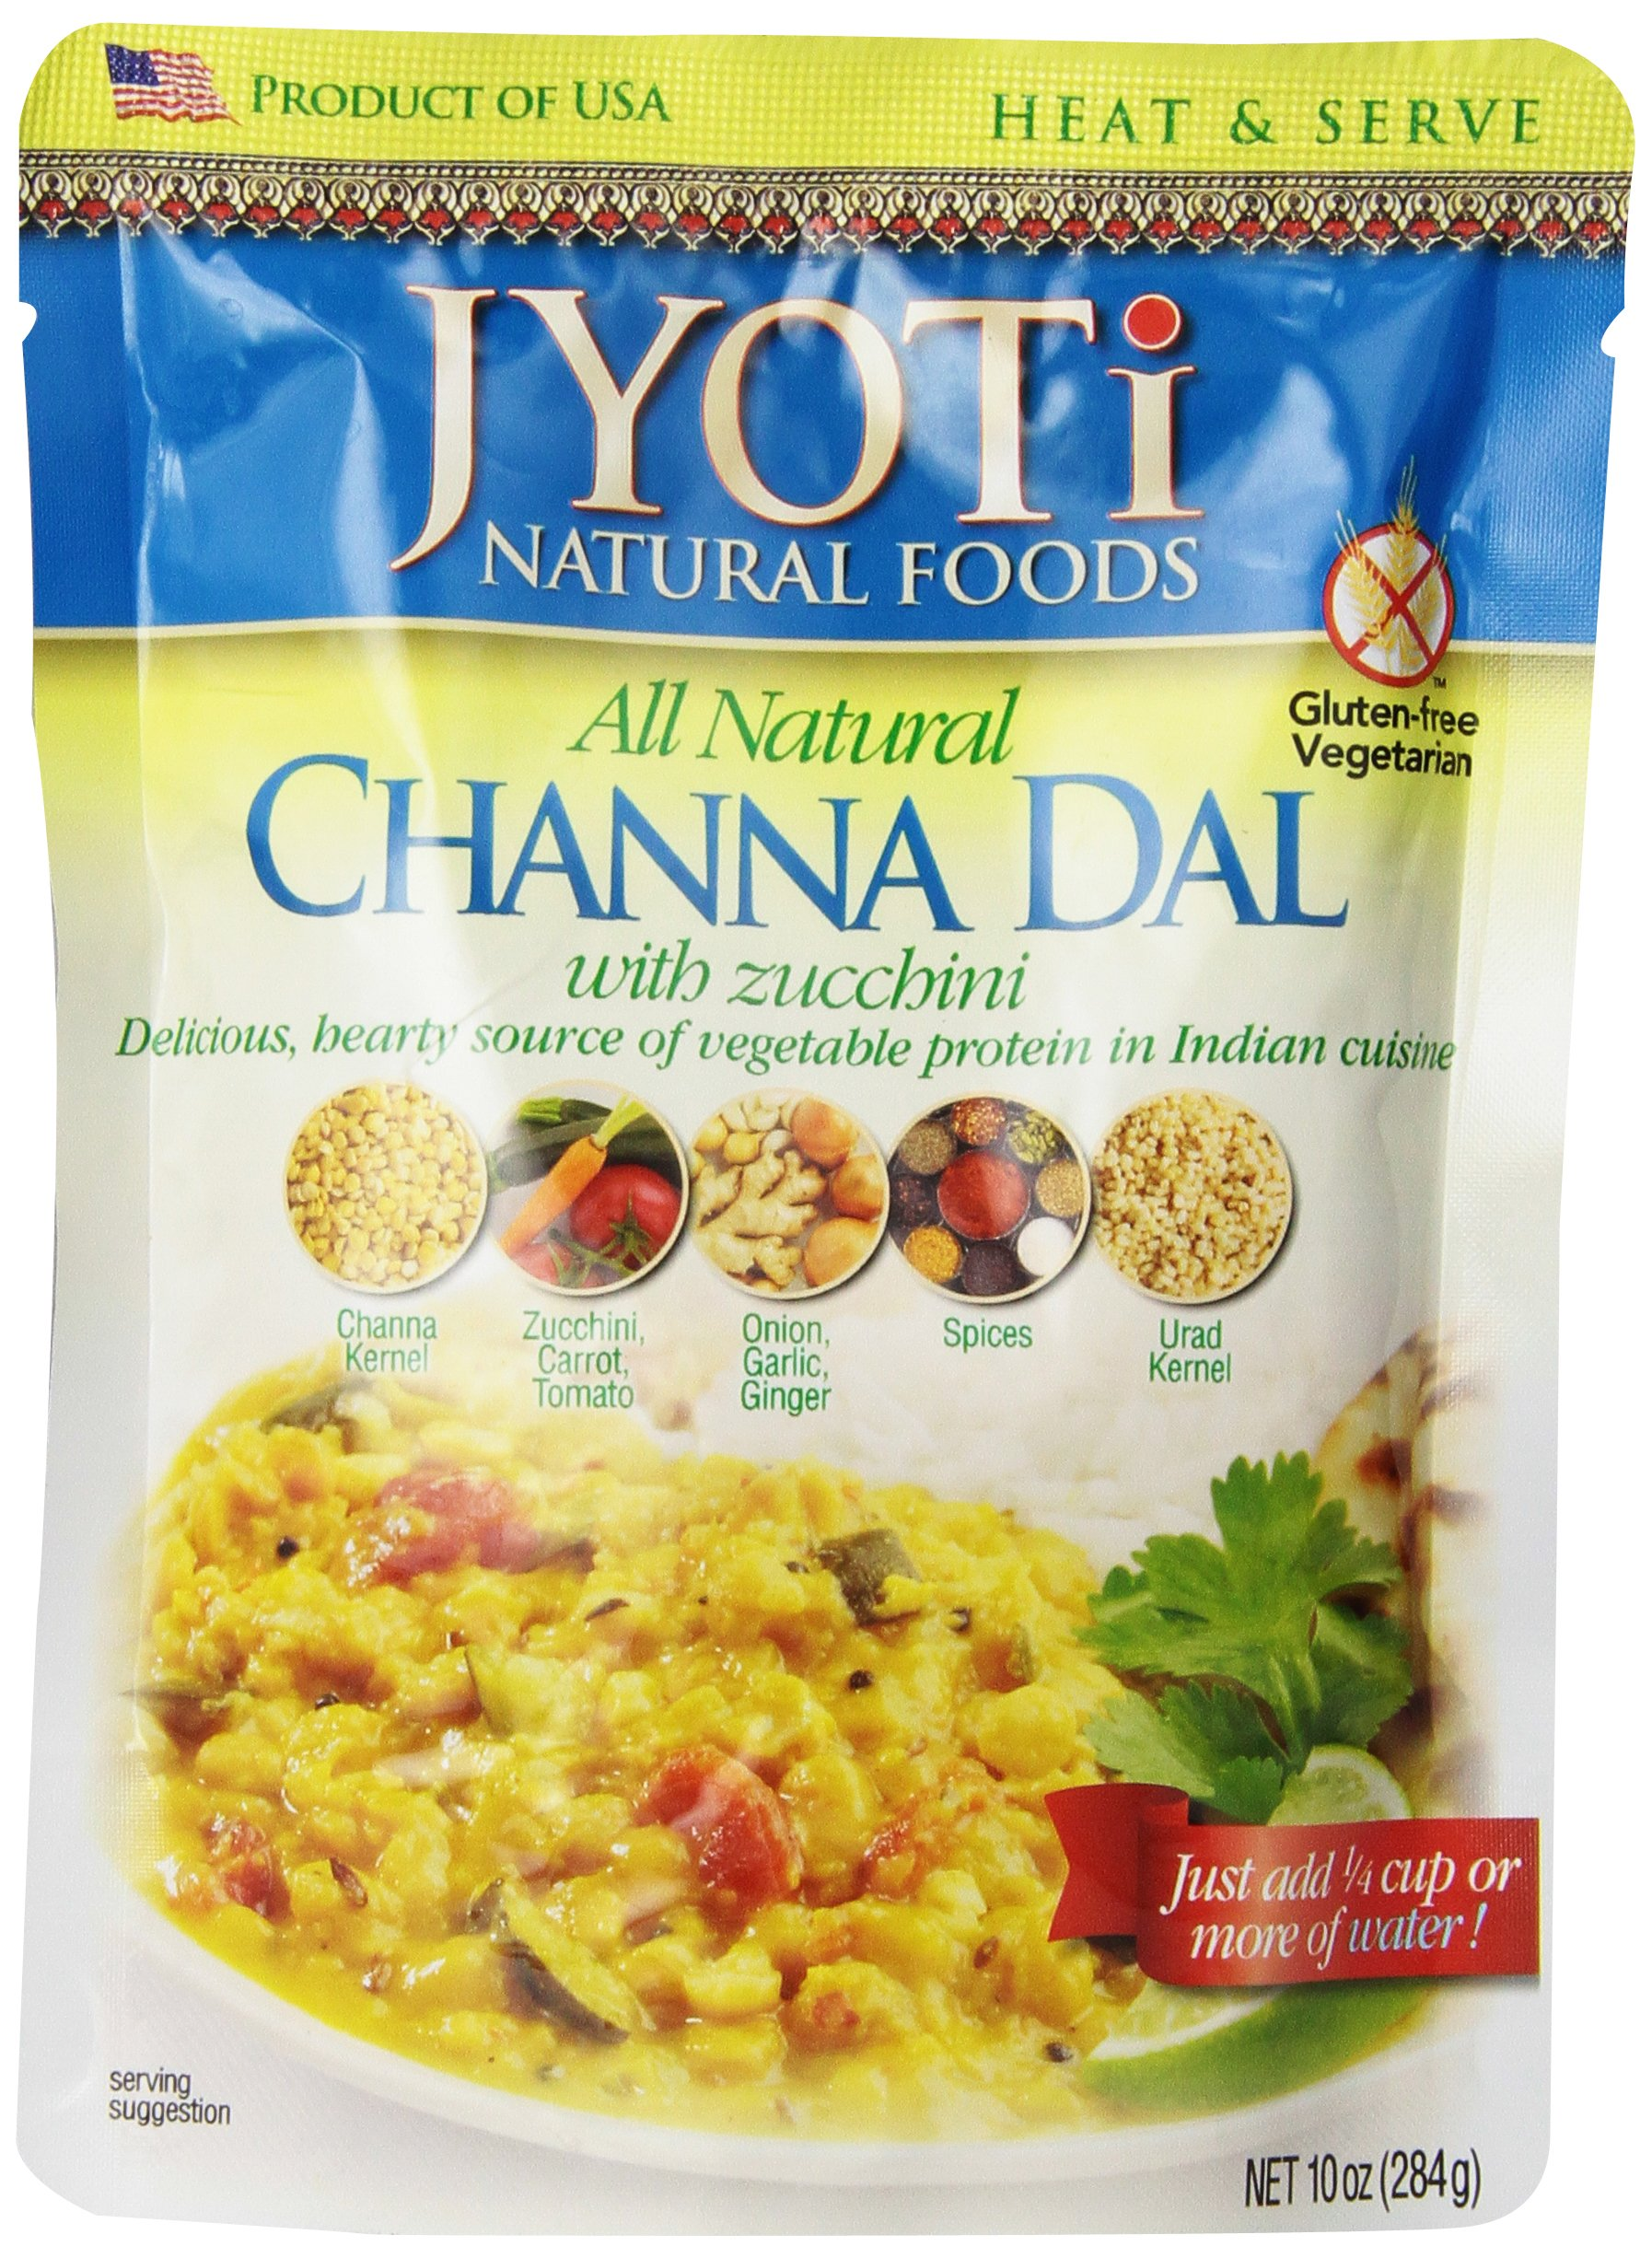 Jyoti Natural Foods Channa Dal with Zuchhini, 10-Ounce (Packaging may vary slightly)